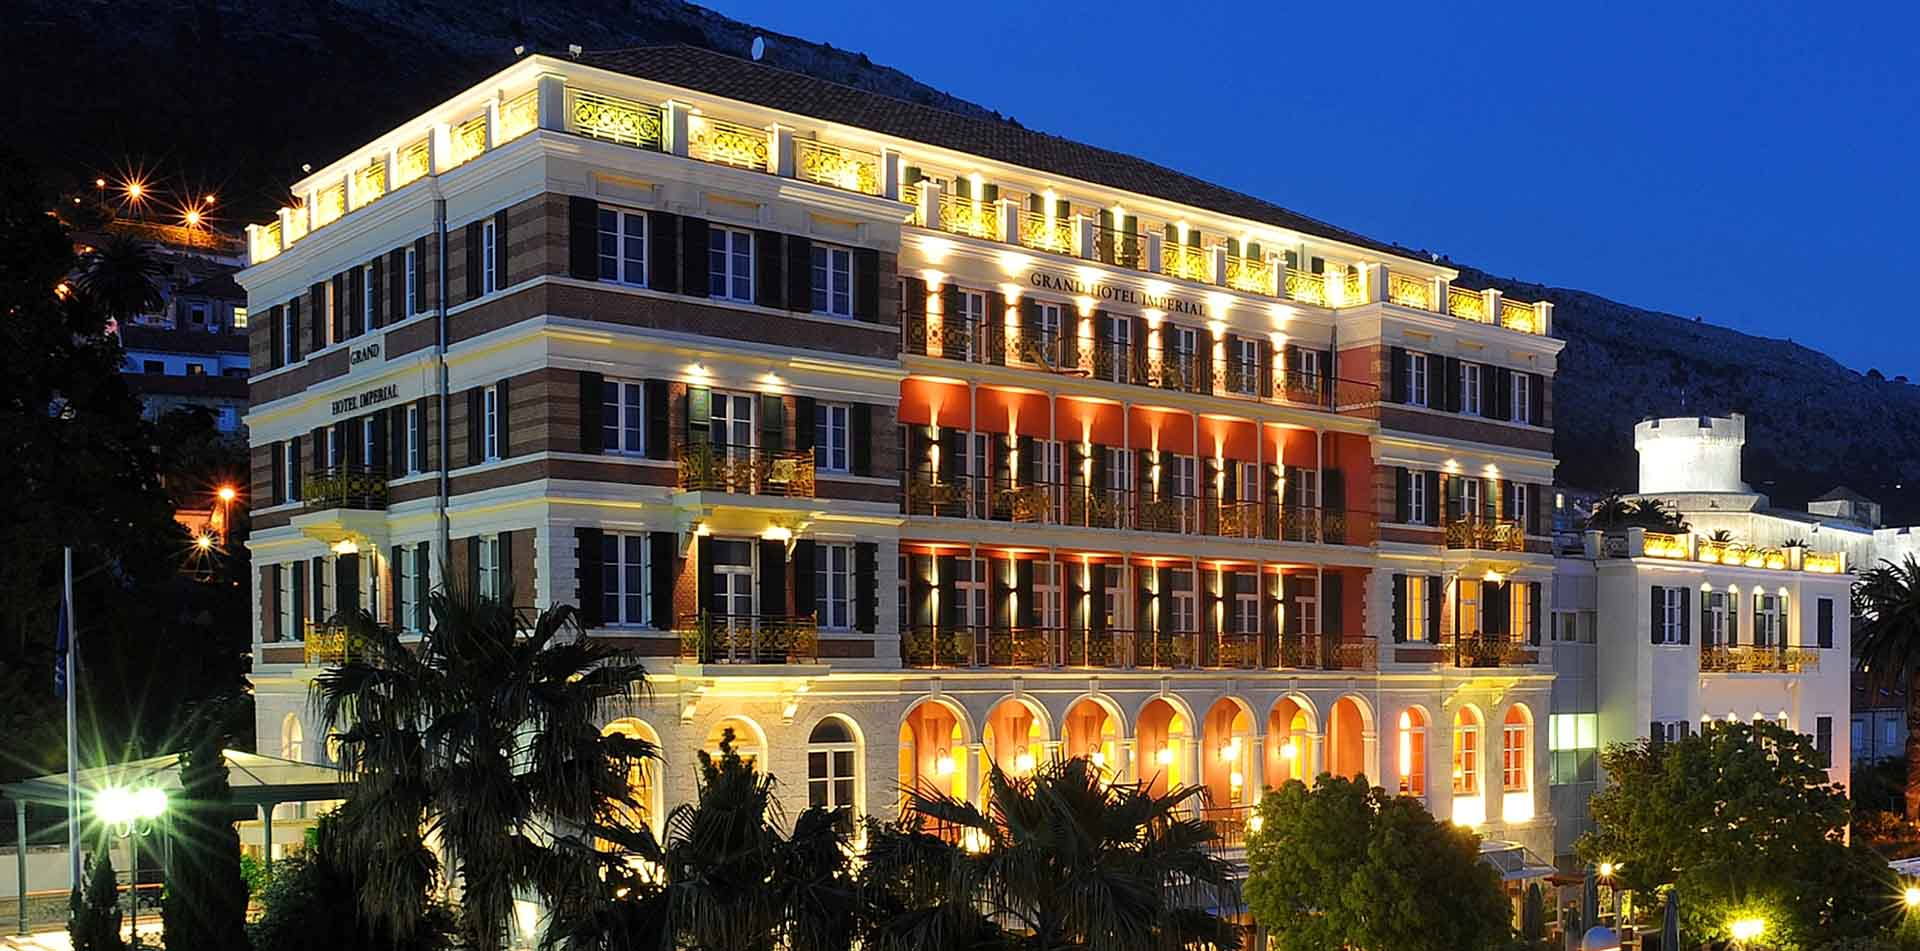 Europe Croatia Hilton Imperial Dubrovnik Hotel elegant exterior lights night palm trees - luxury vacation destinations